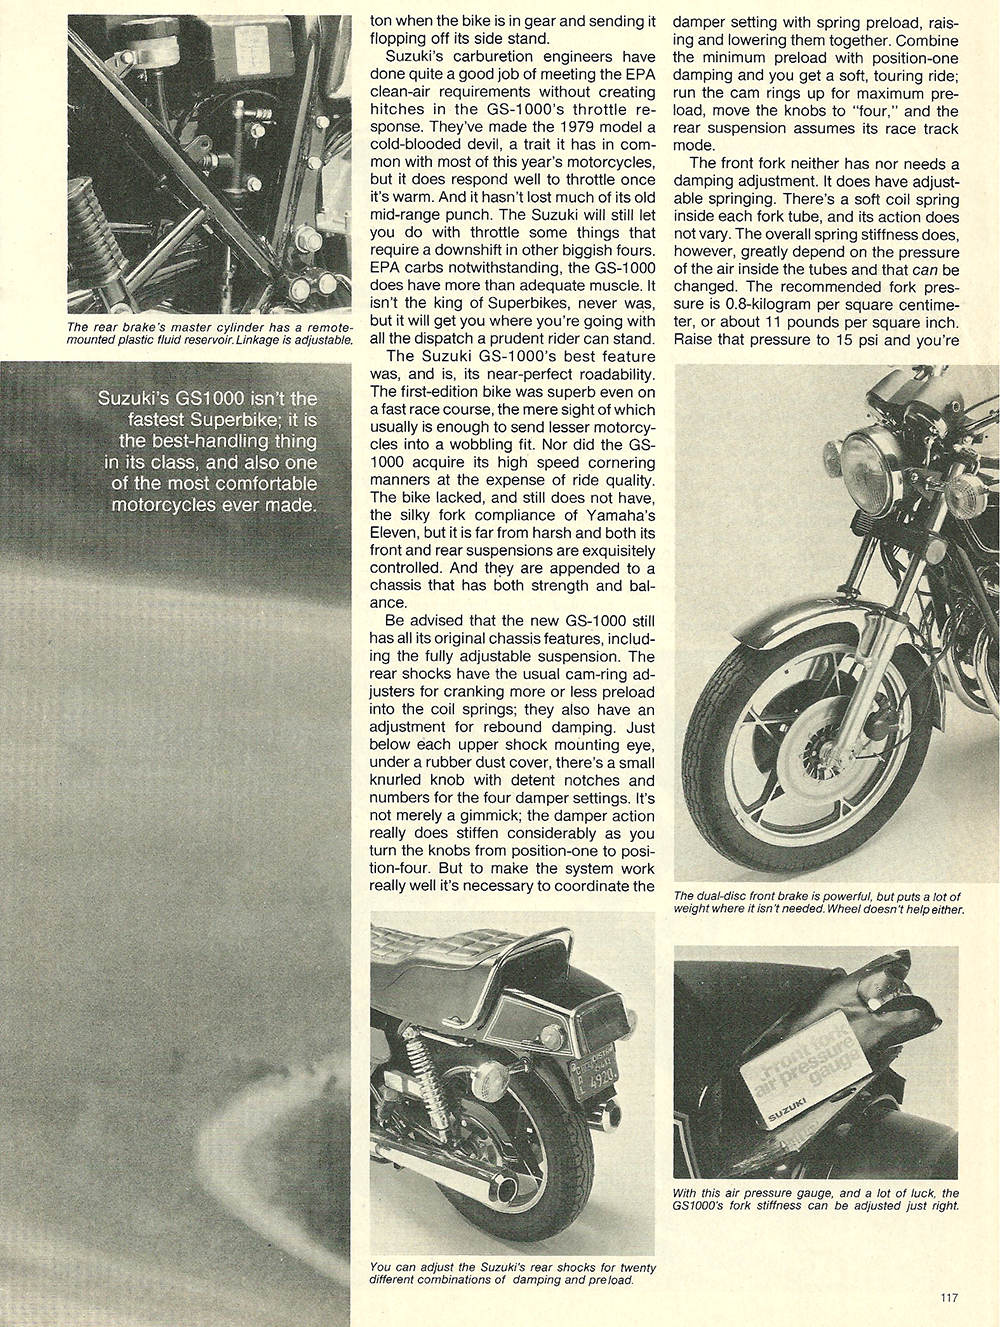 1979 Suzuki GS1000E road test 06.jpg